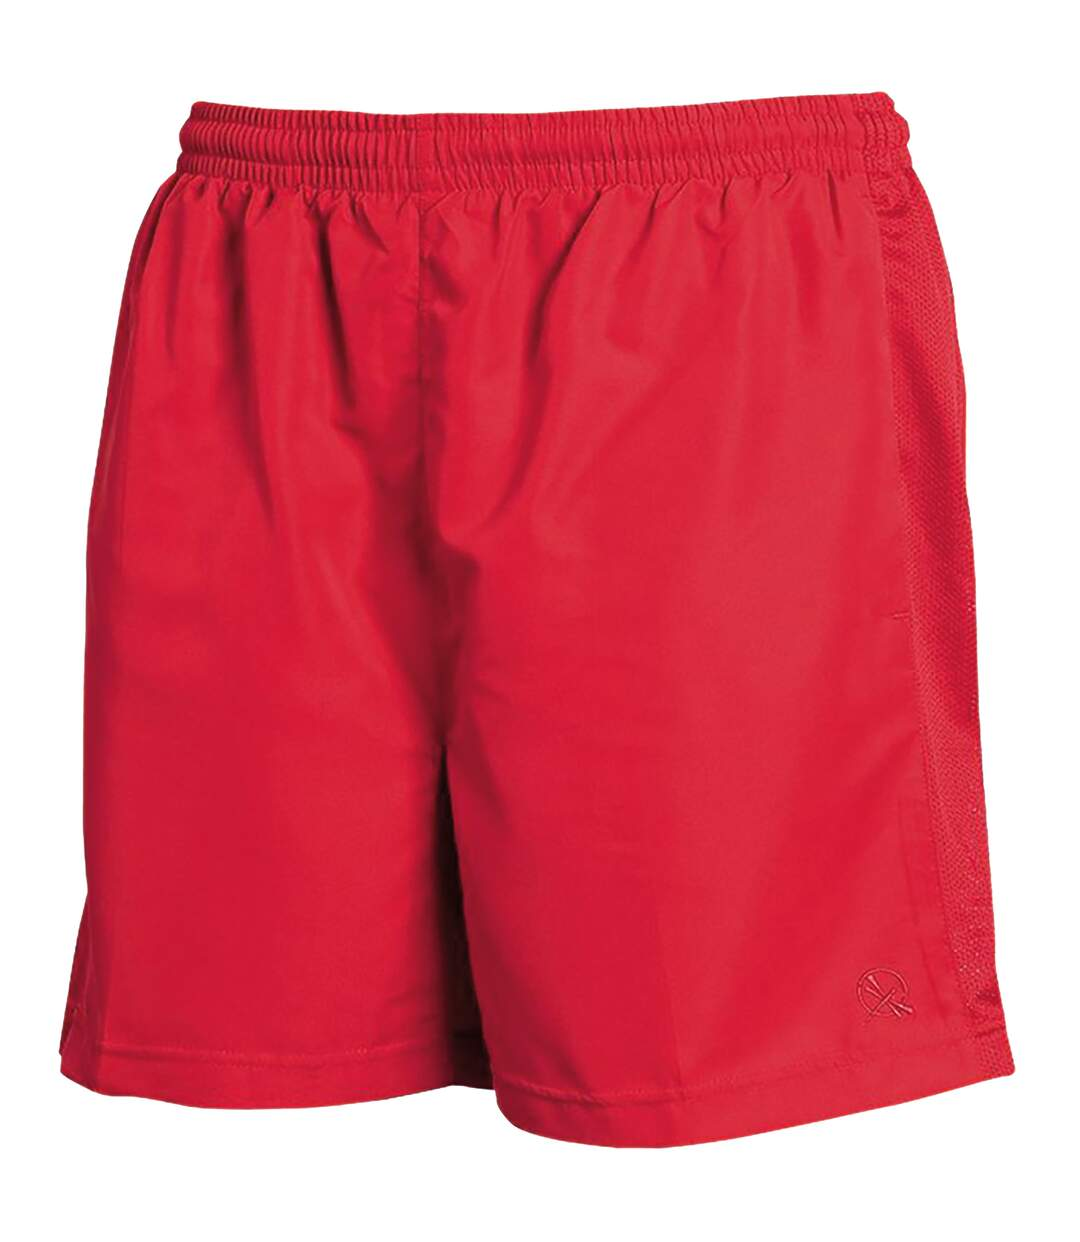 Tombo Teamsport Mens Lined Performance Sports Shorts (Red) - UTRW1546